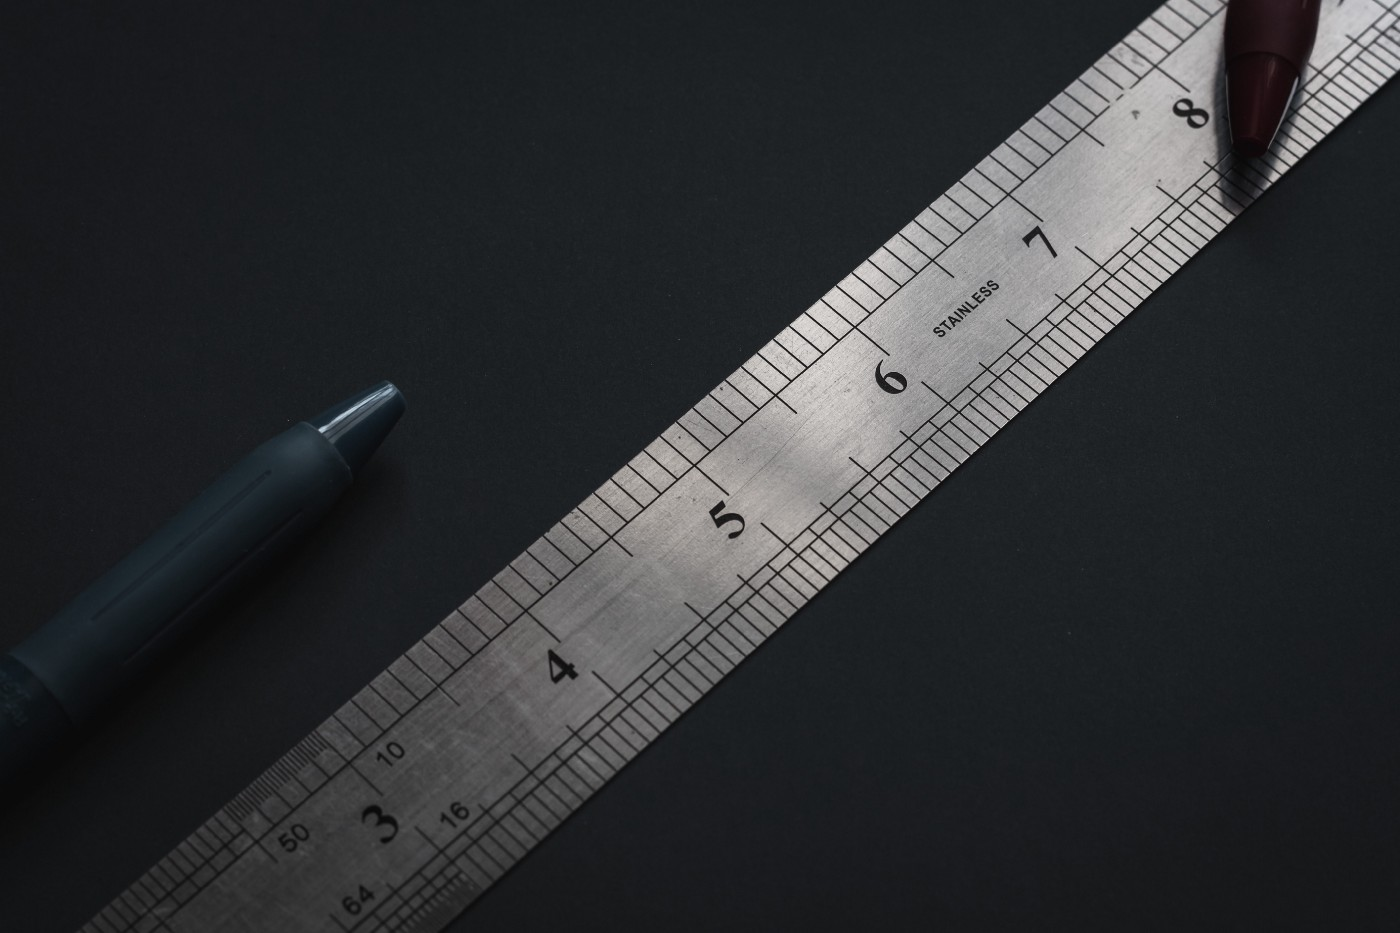 A metal ruler and two pens against a black background.